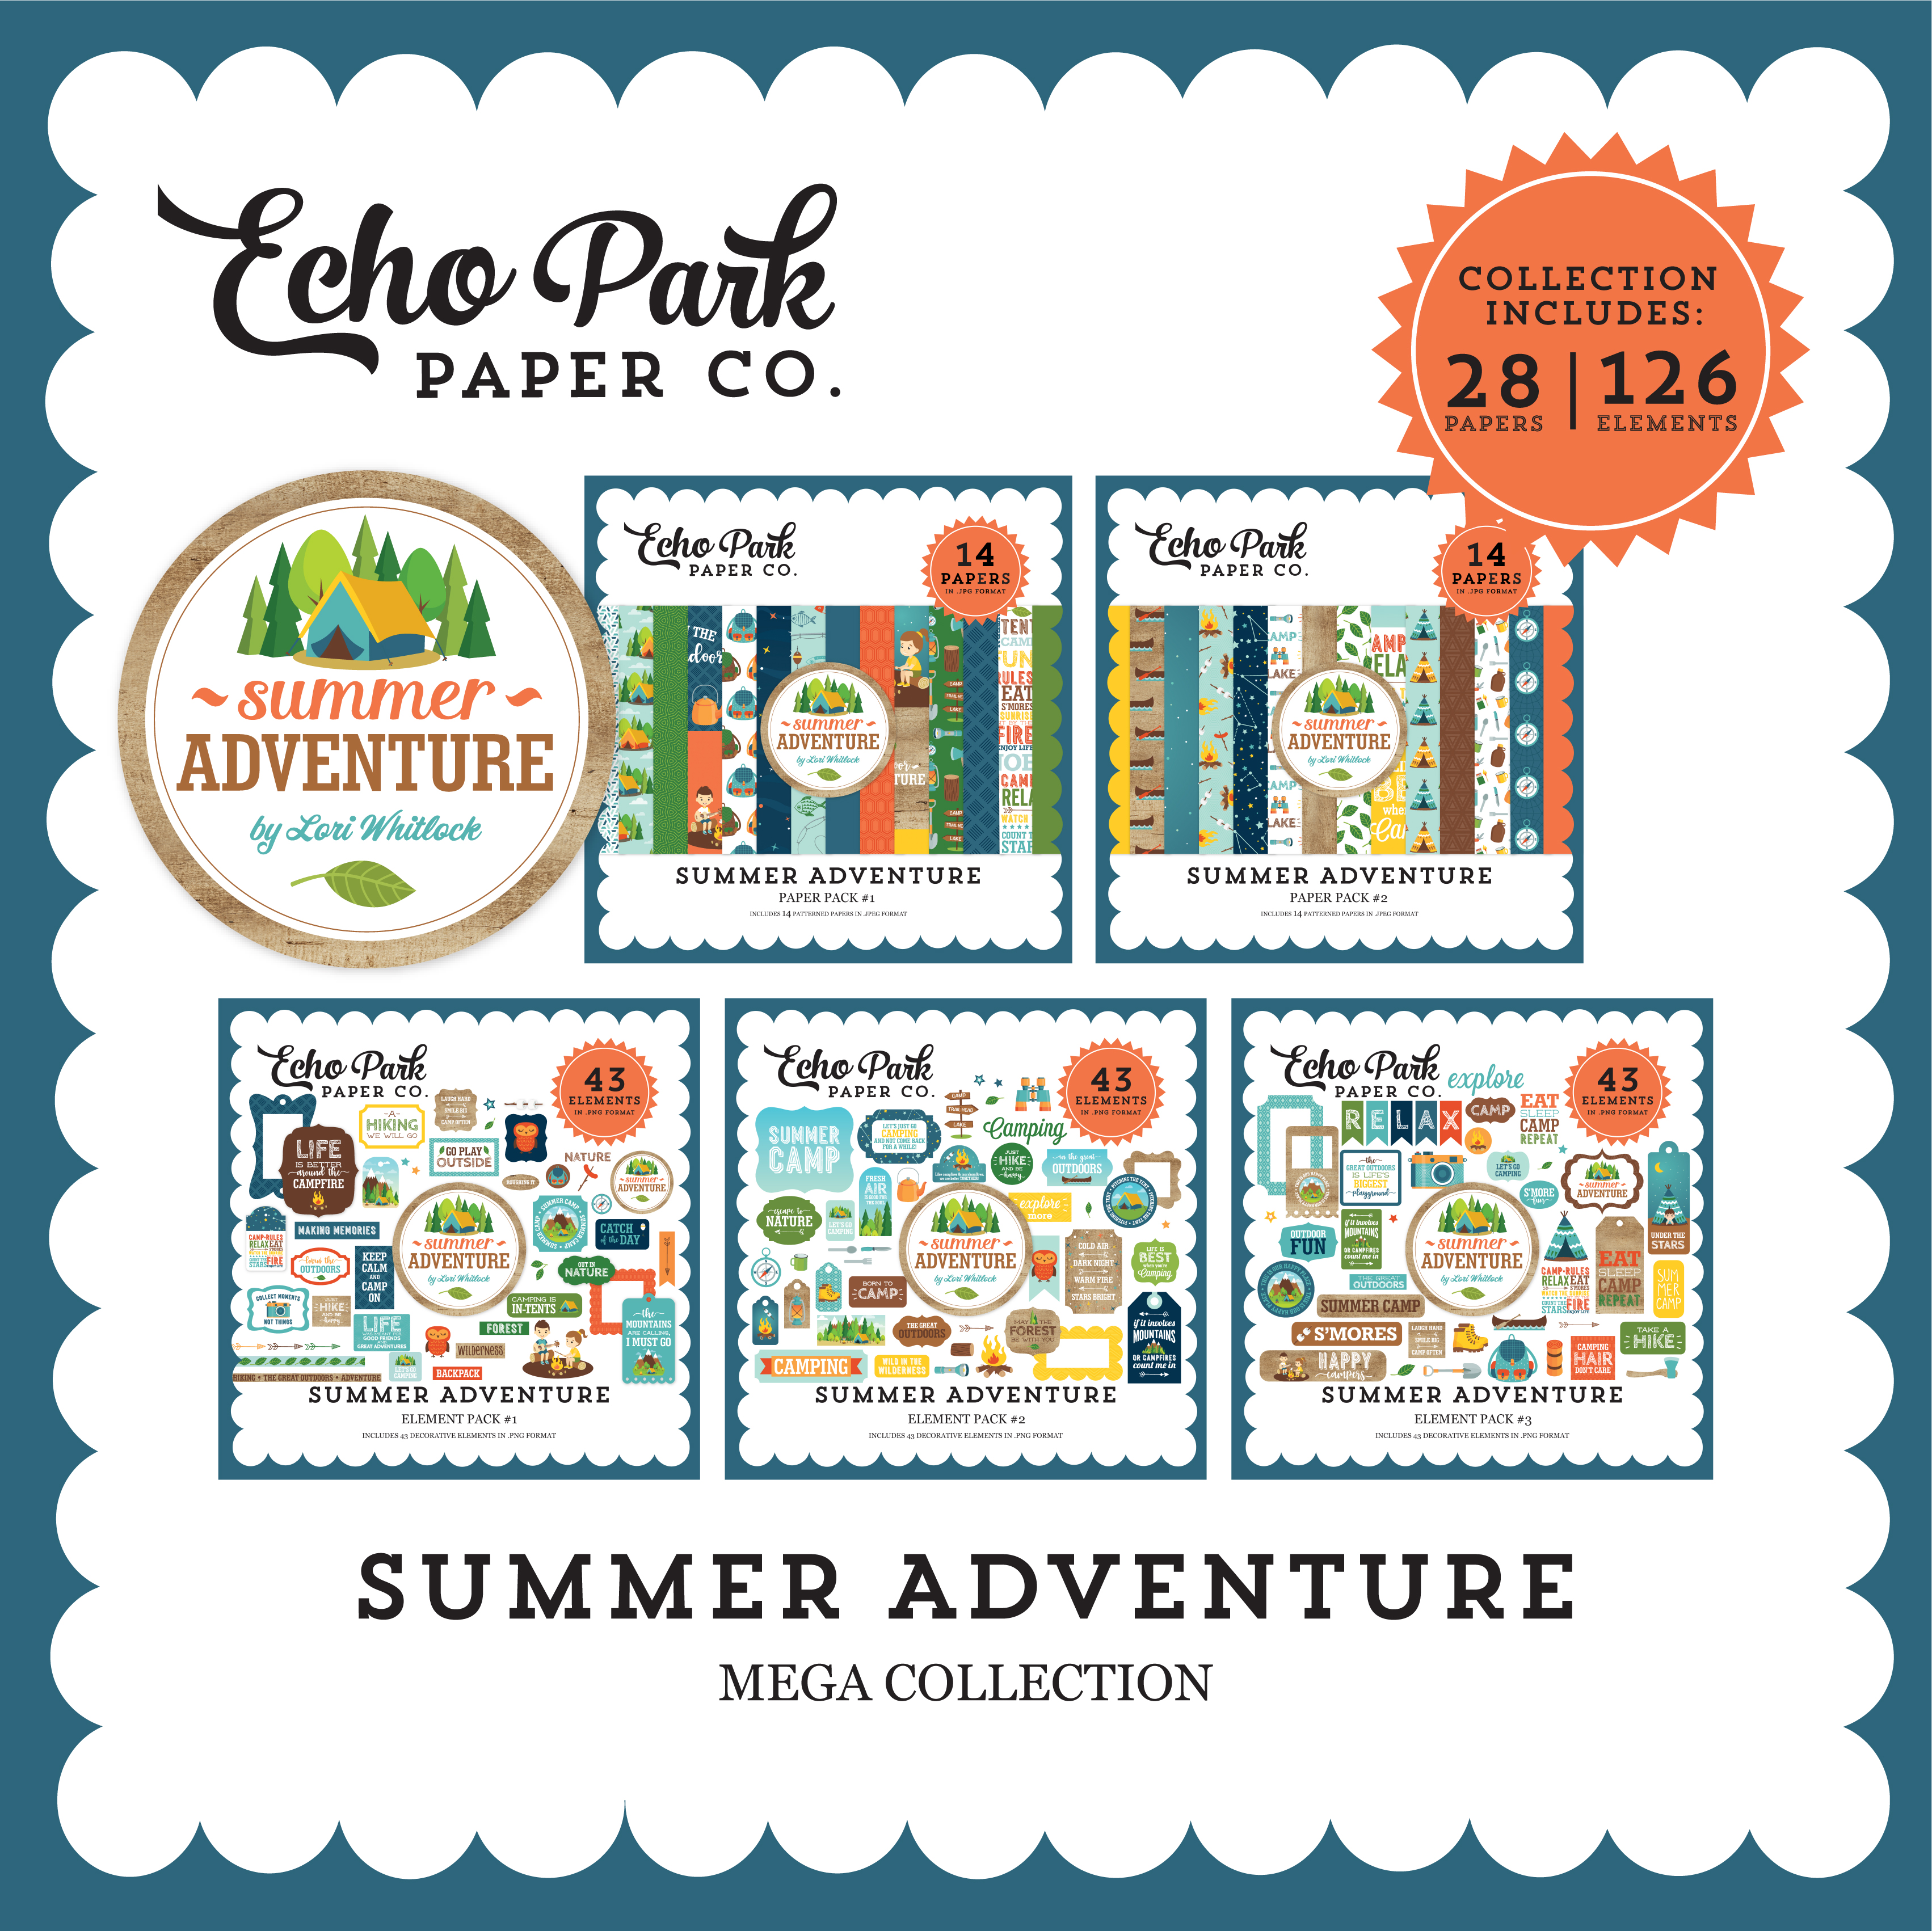 Summer Adventure Mega Collection